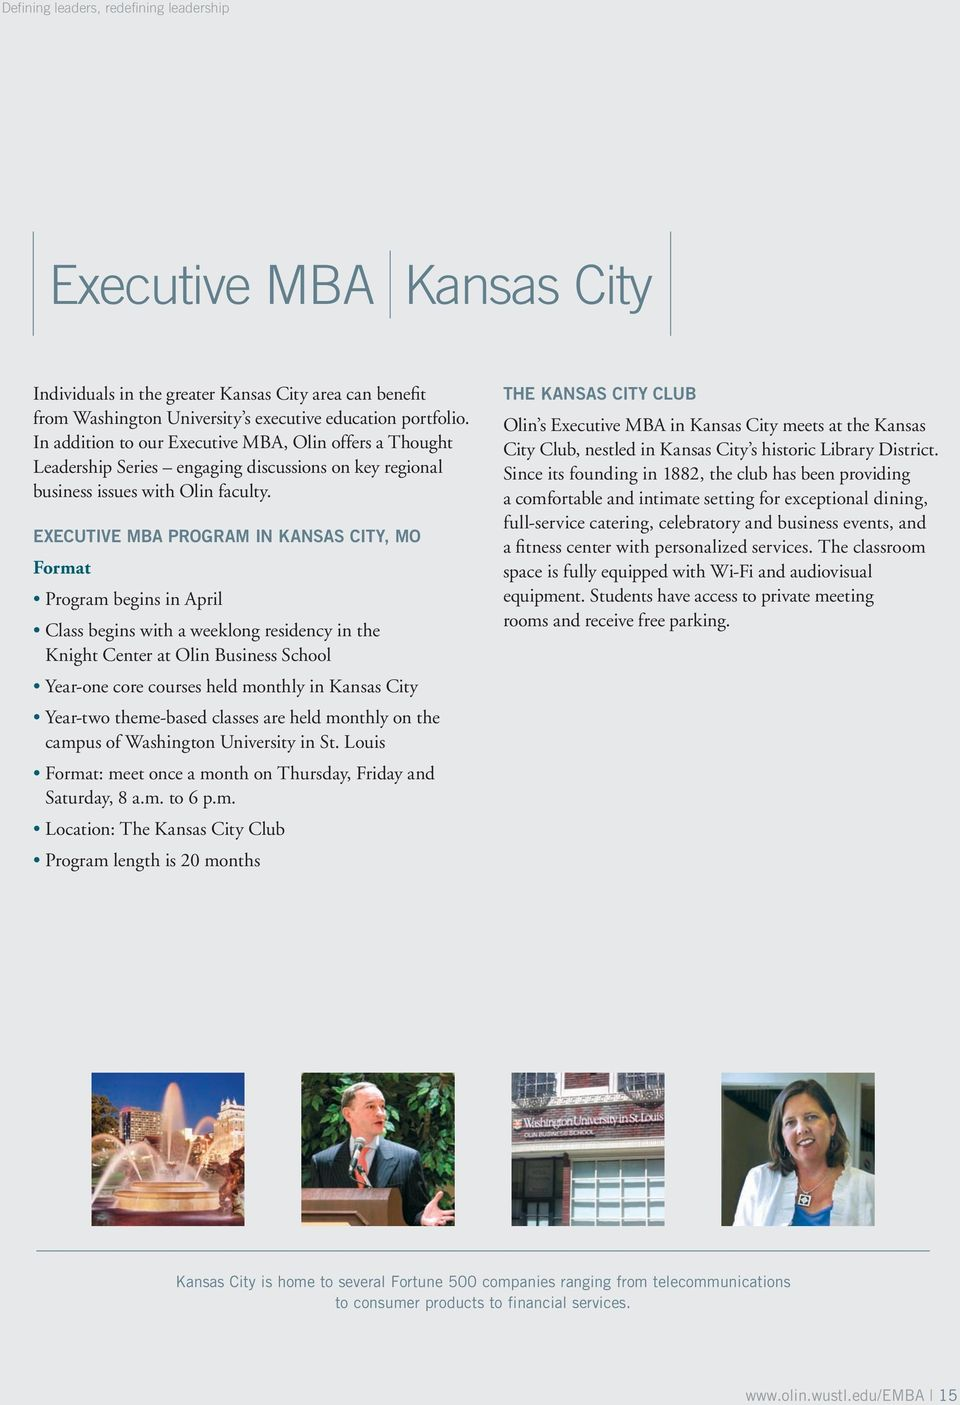 EXECUTIVE MBA PROGRAM IN KANSAS CITY, MO Format Program begins in April Class begins with a weeklong residency in the Knight Center at Olin Business School Year-one core courses held monthly in